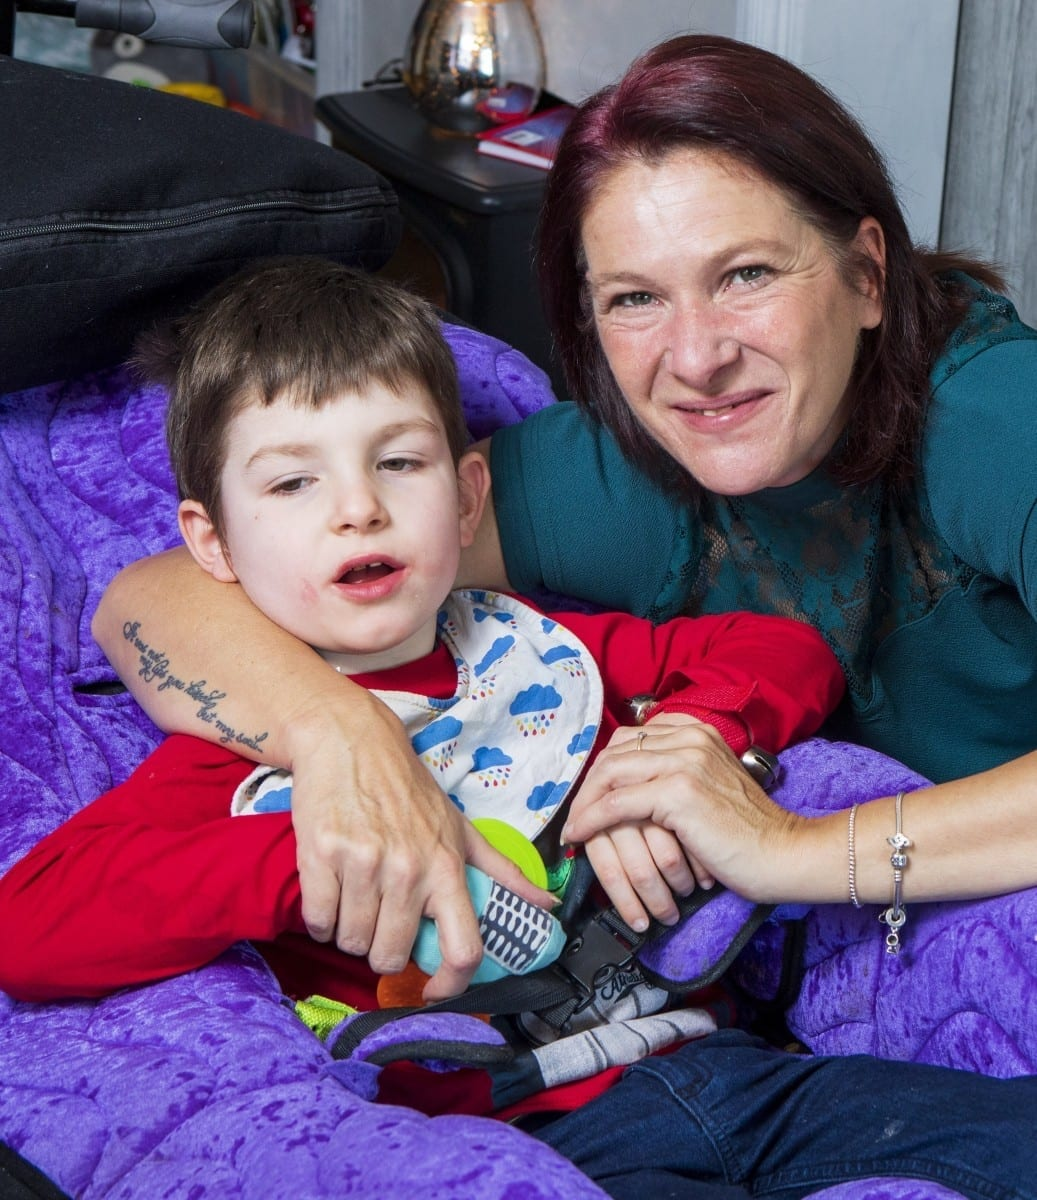 This Little Boy Has Forgotten Nearly Everything He Has Learned In His Short Life After Being Struck Down With Dementia – Aged Just FIVE